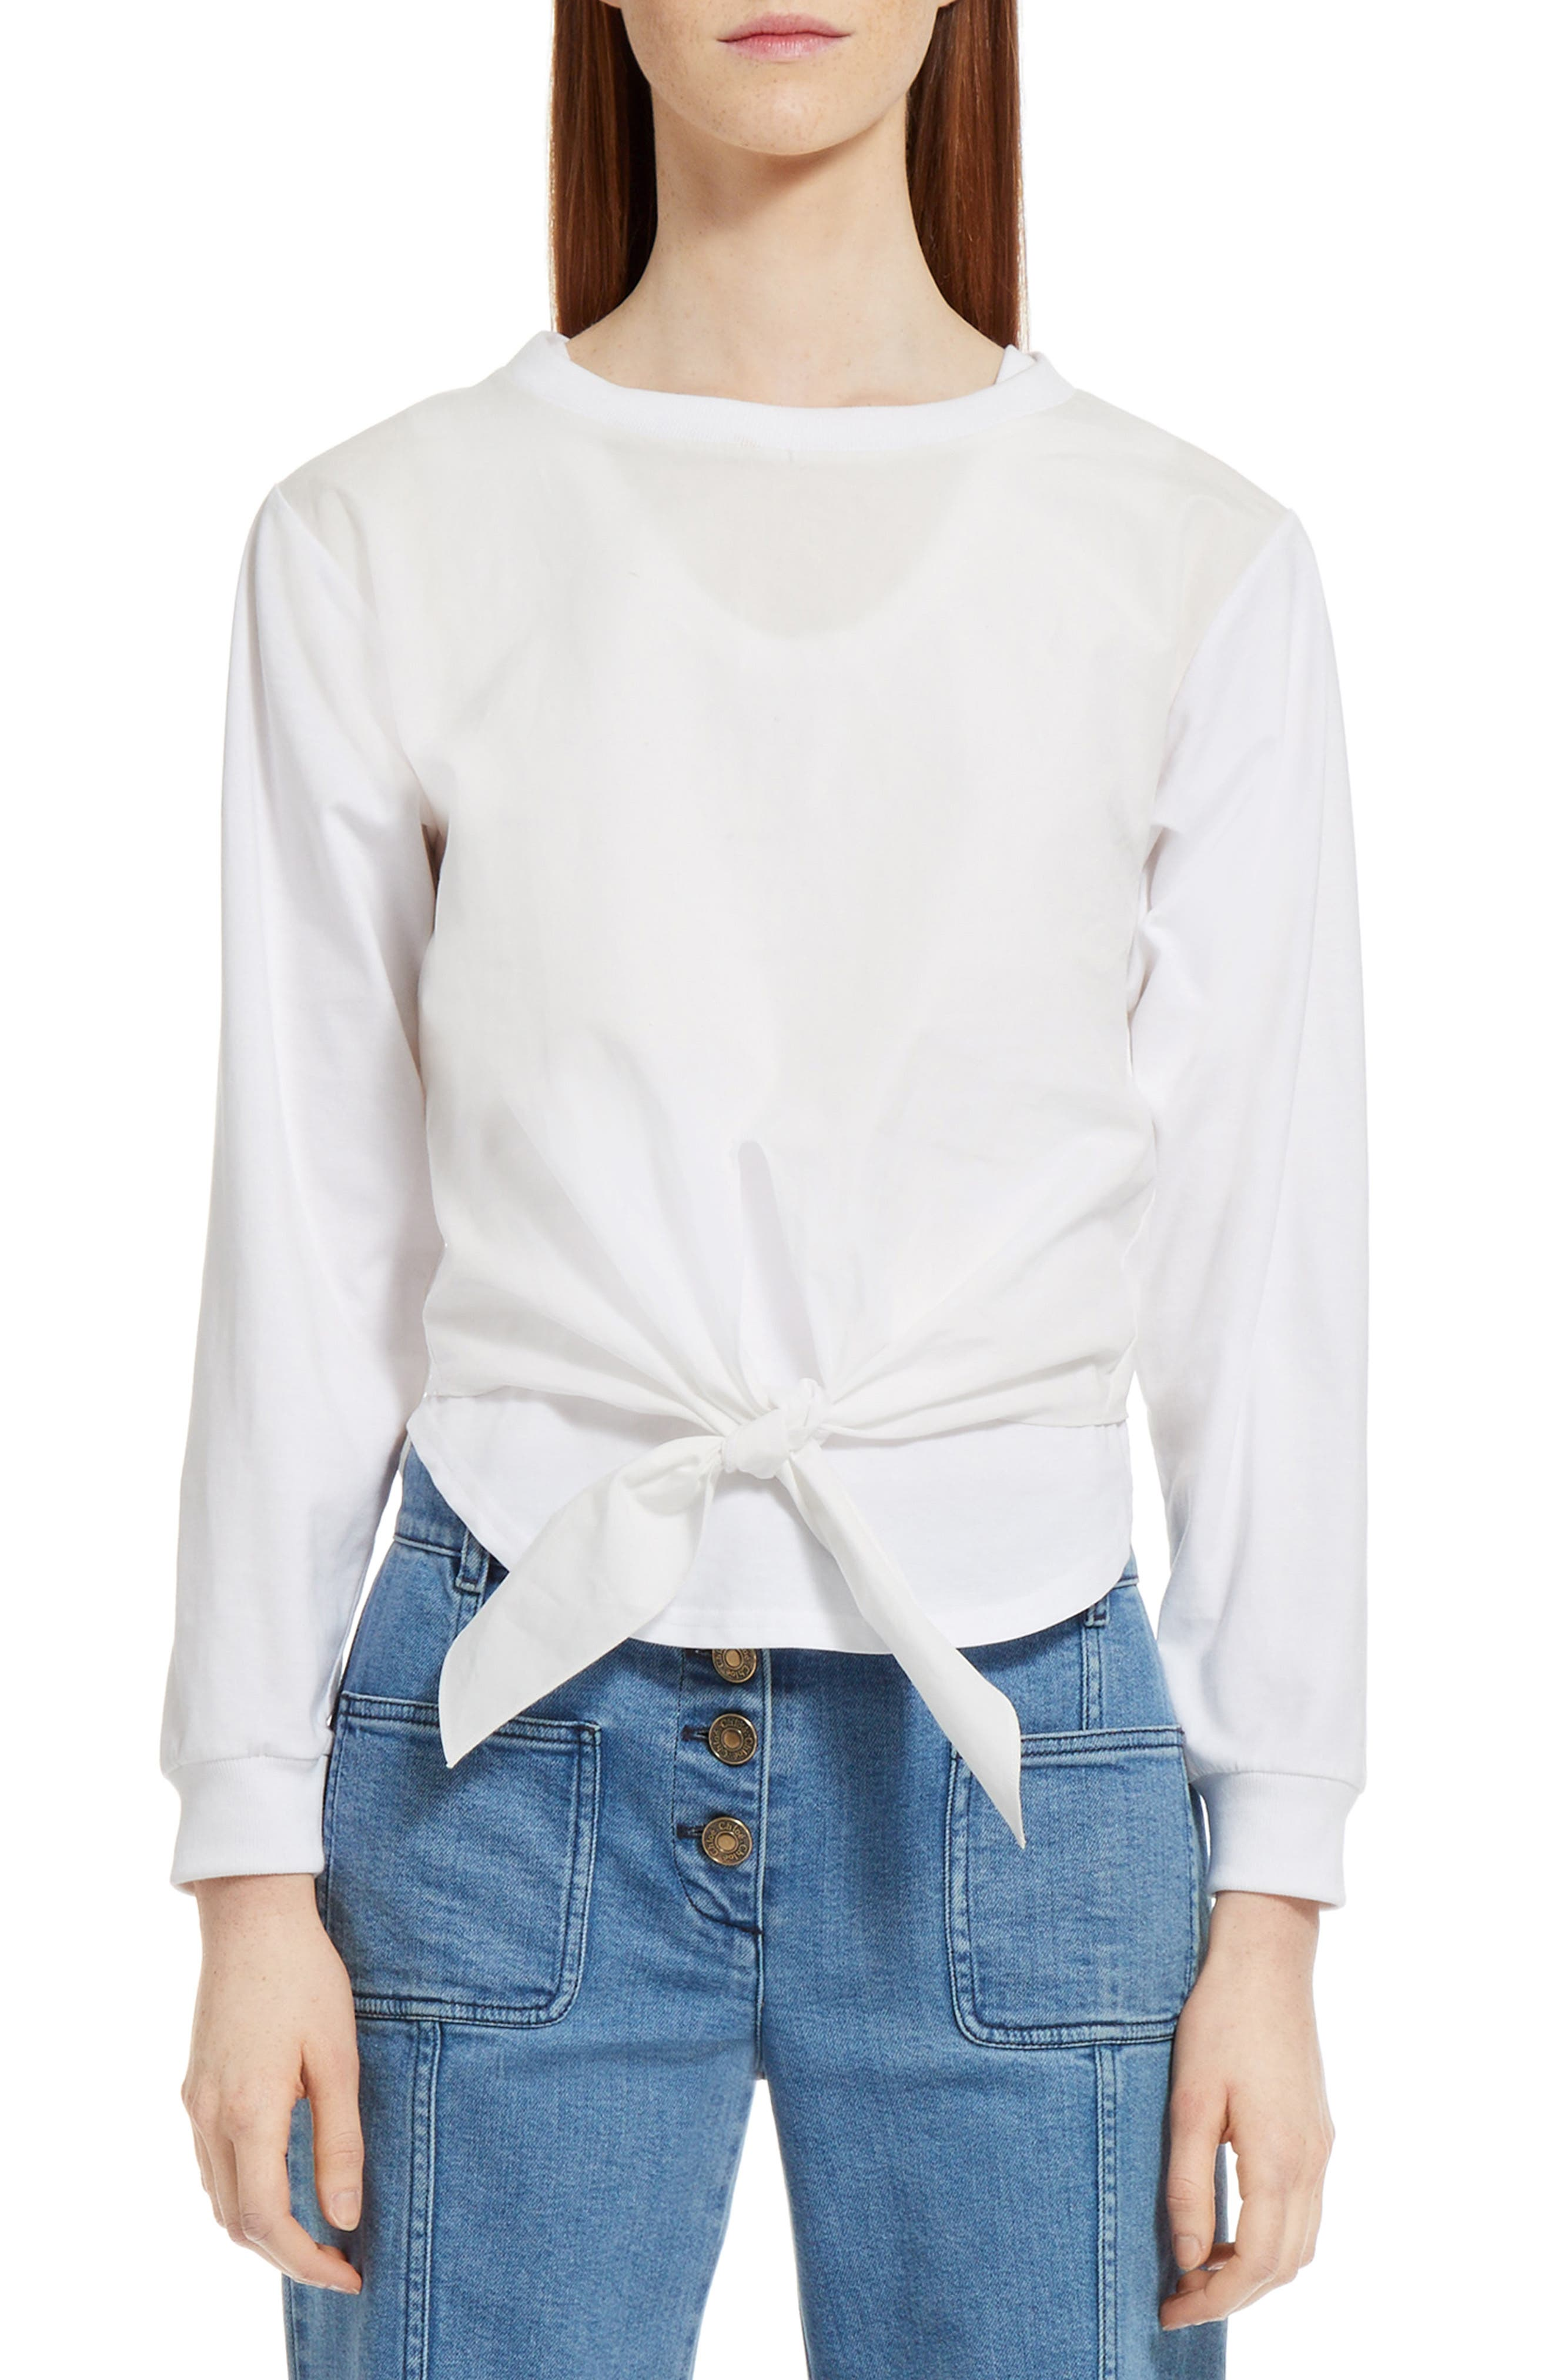 Alternate Image 1 Selected - Chloé Layered Tie Front Top